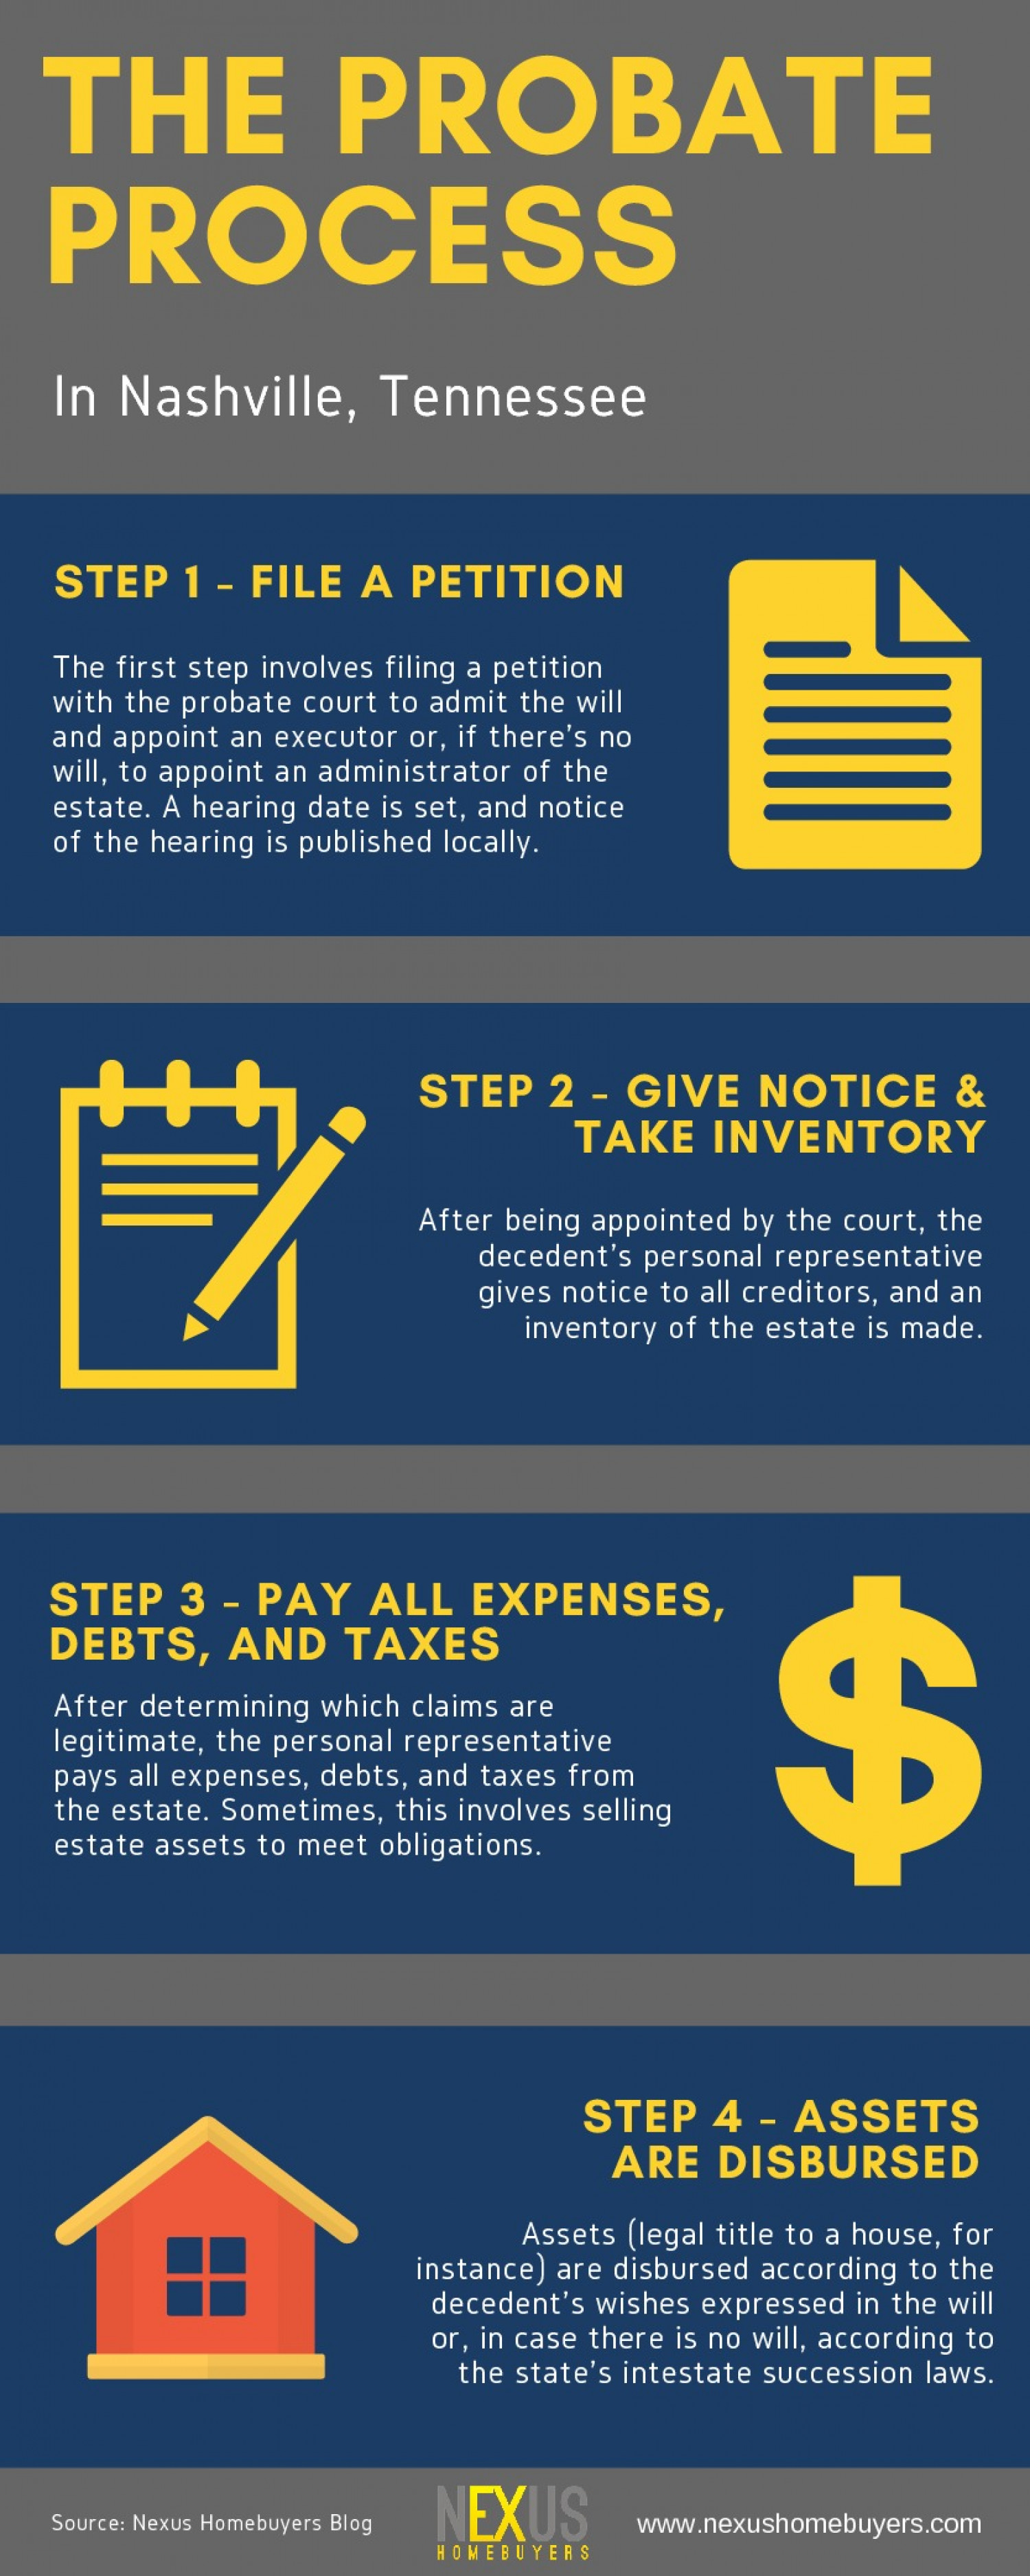 The Probate Process In Nashville, Tennessee Infographic